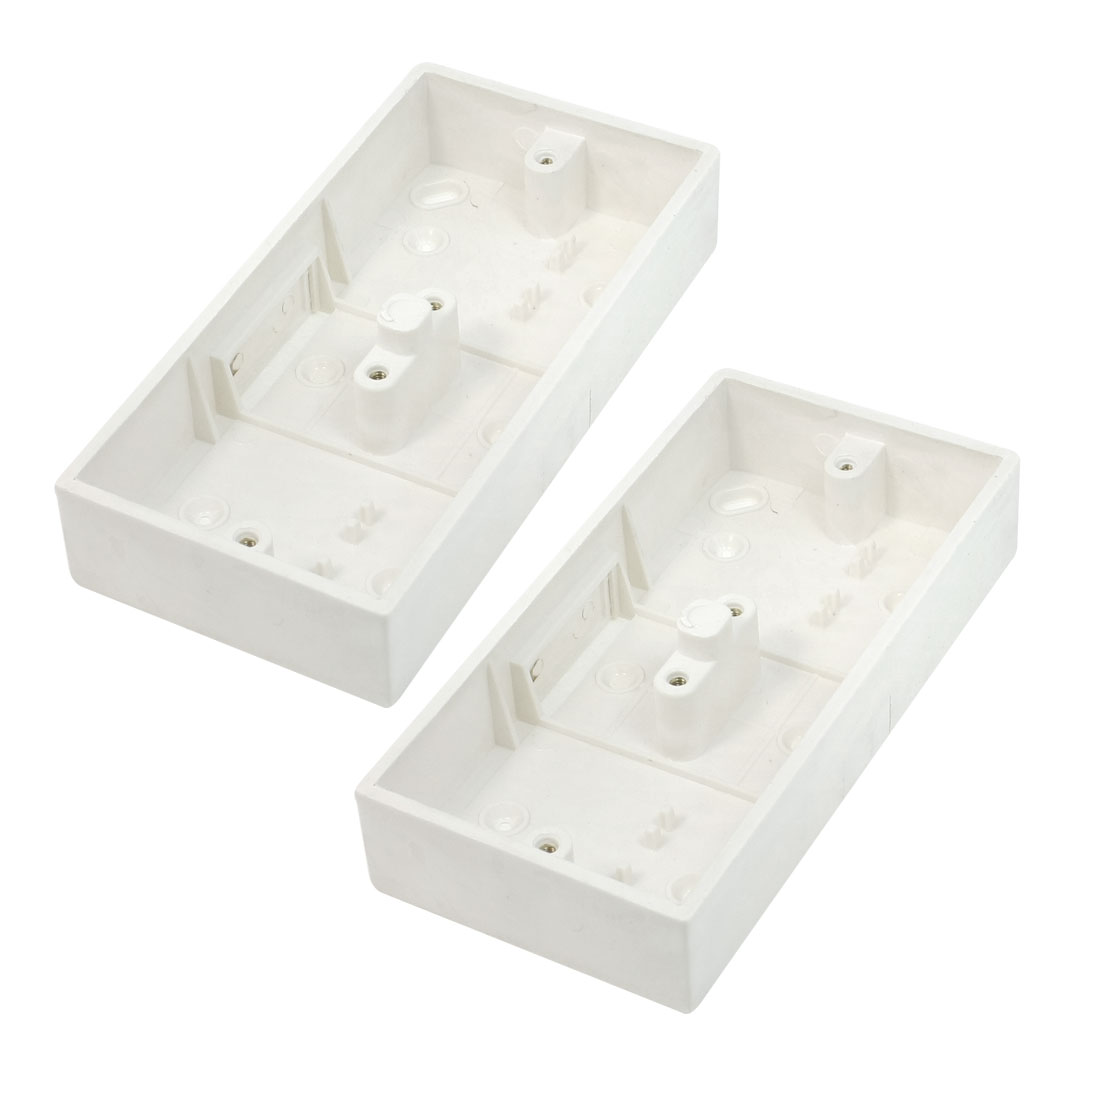 2 Pcs 172x86x33mm White PVC Surface Mounted Wallpanel 2 Gang Junction Box Case